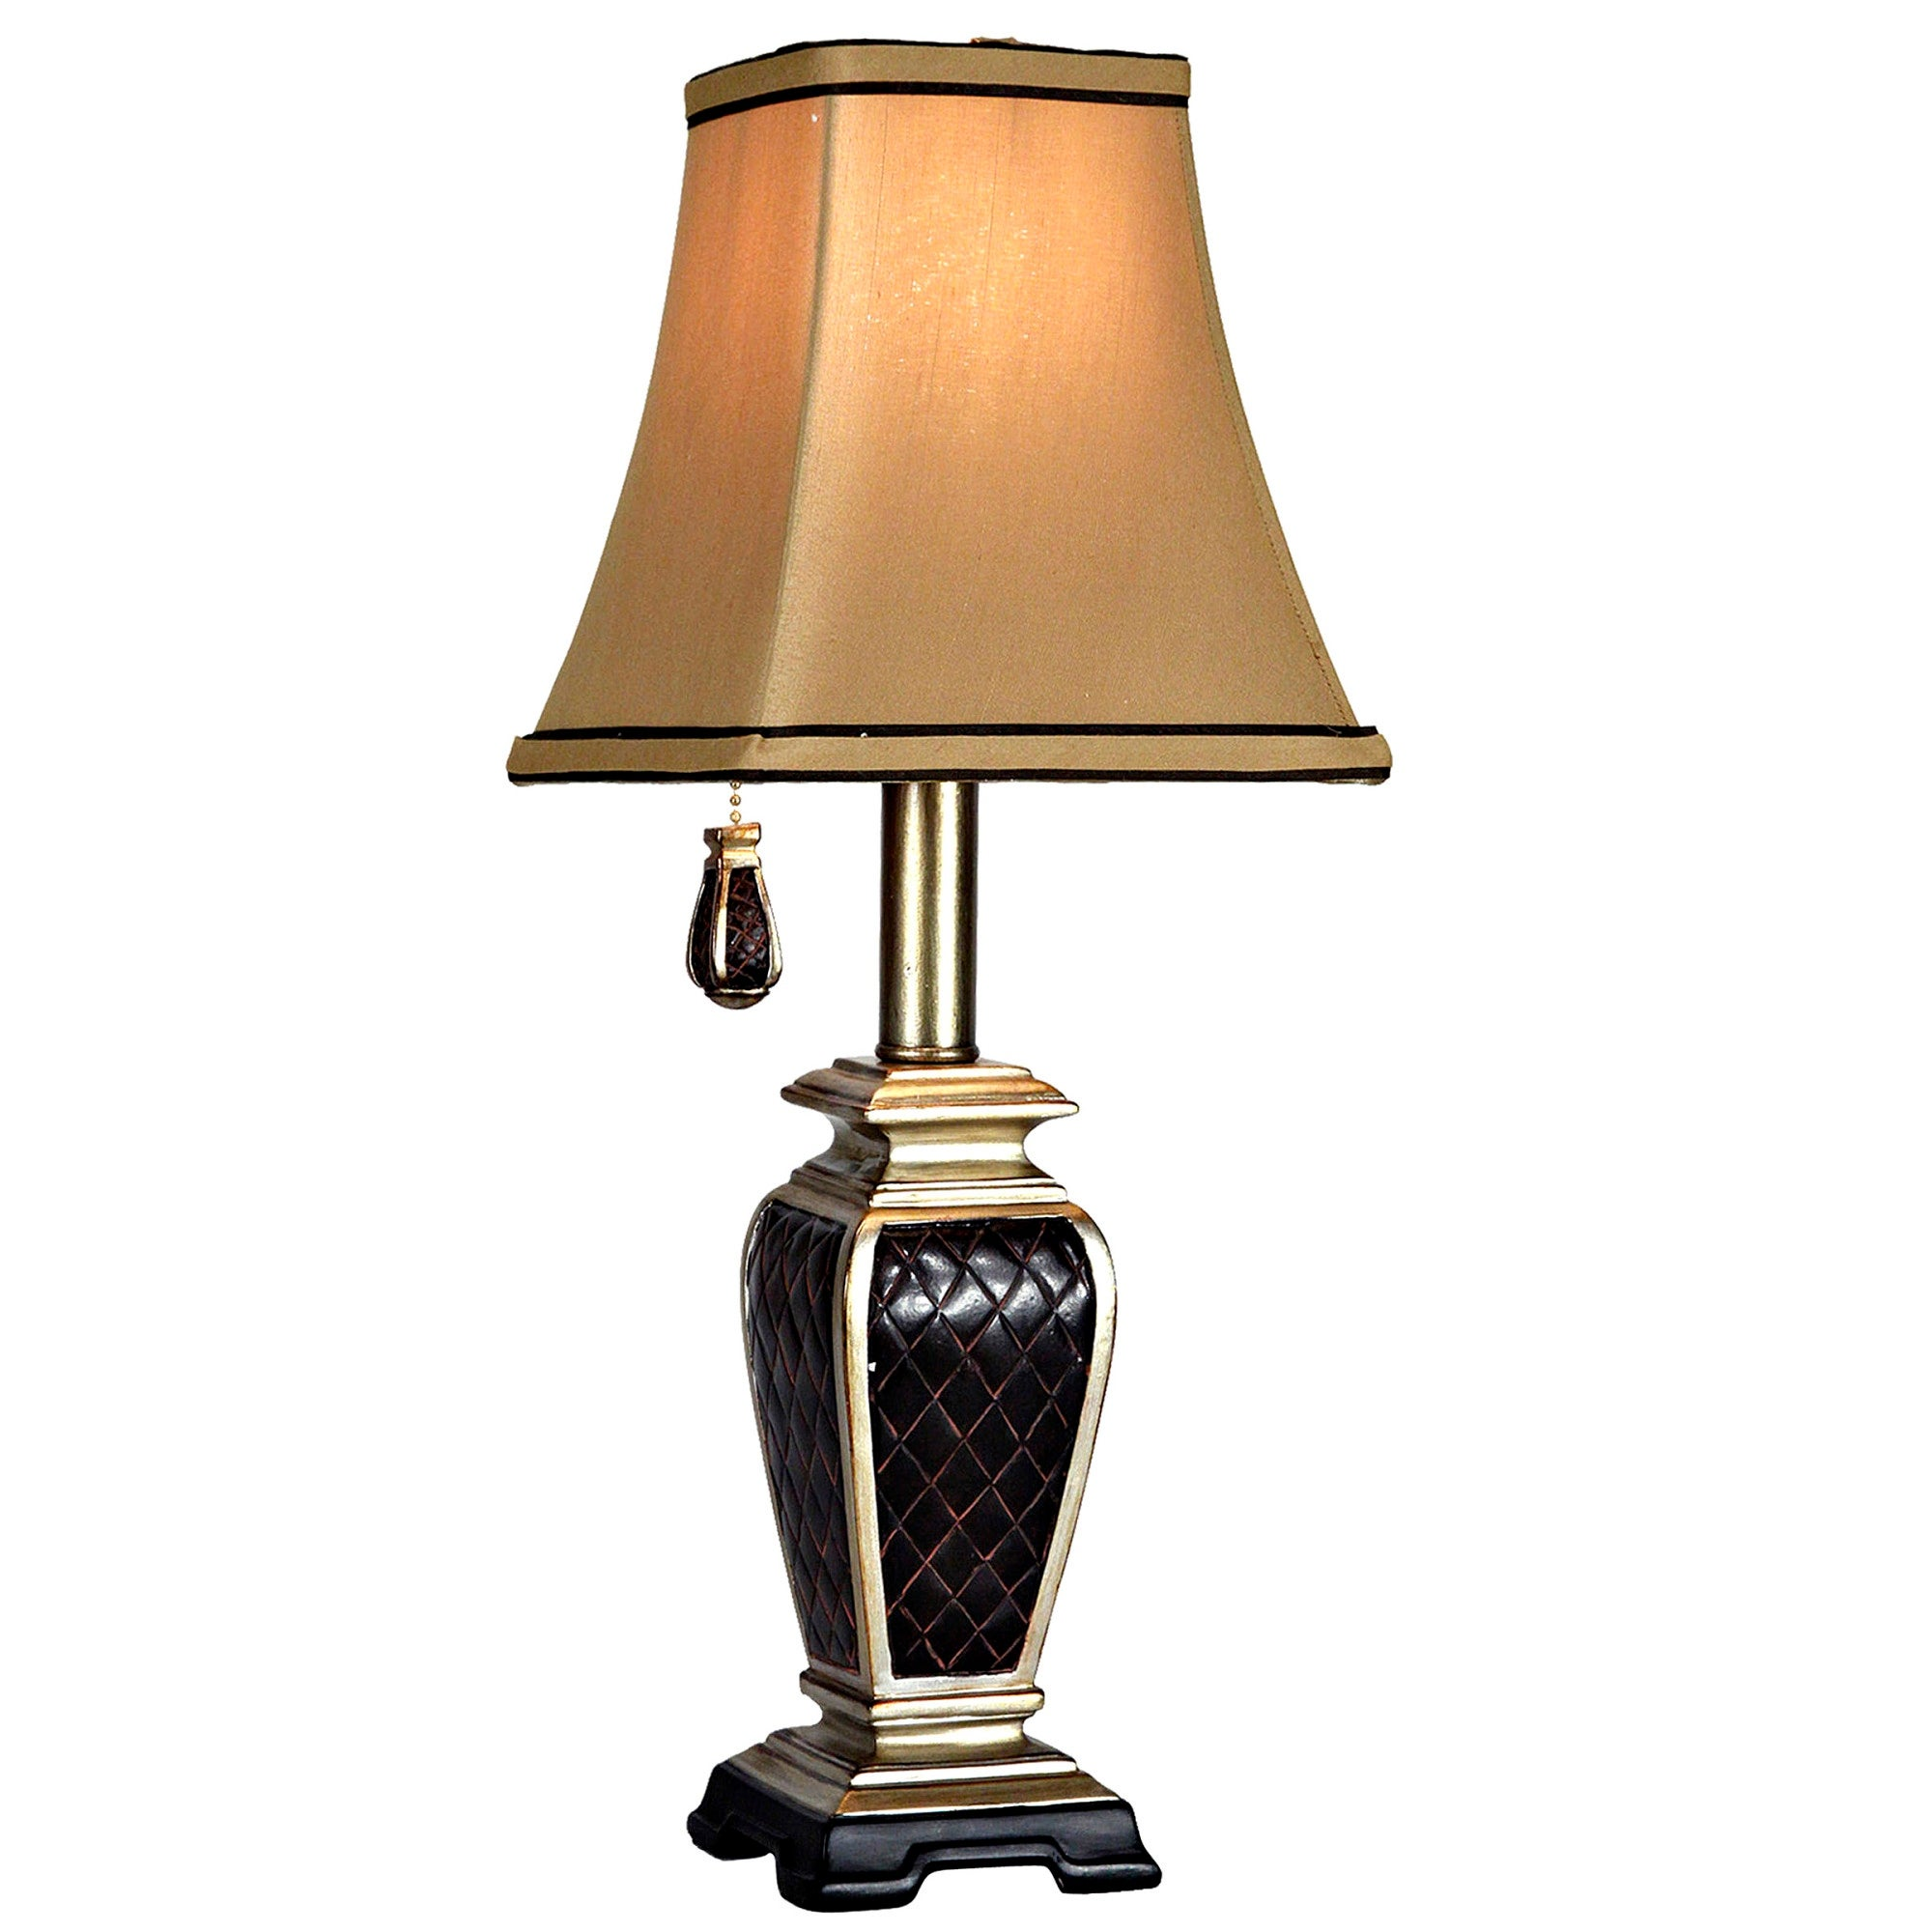 Delacora SC-L1-1004 Brompton 18/'/' Tall Accent Table Lamp with Fabric Shade